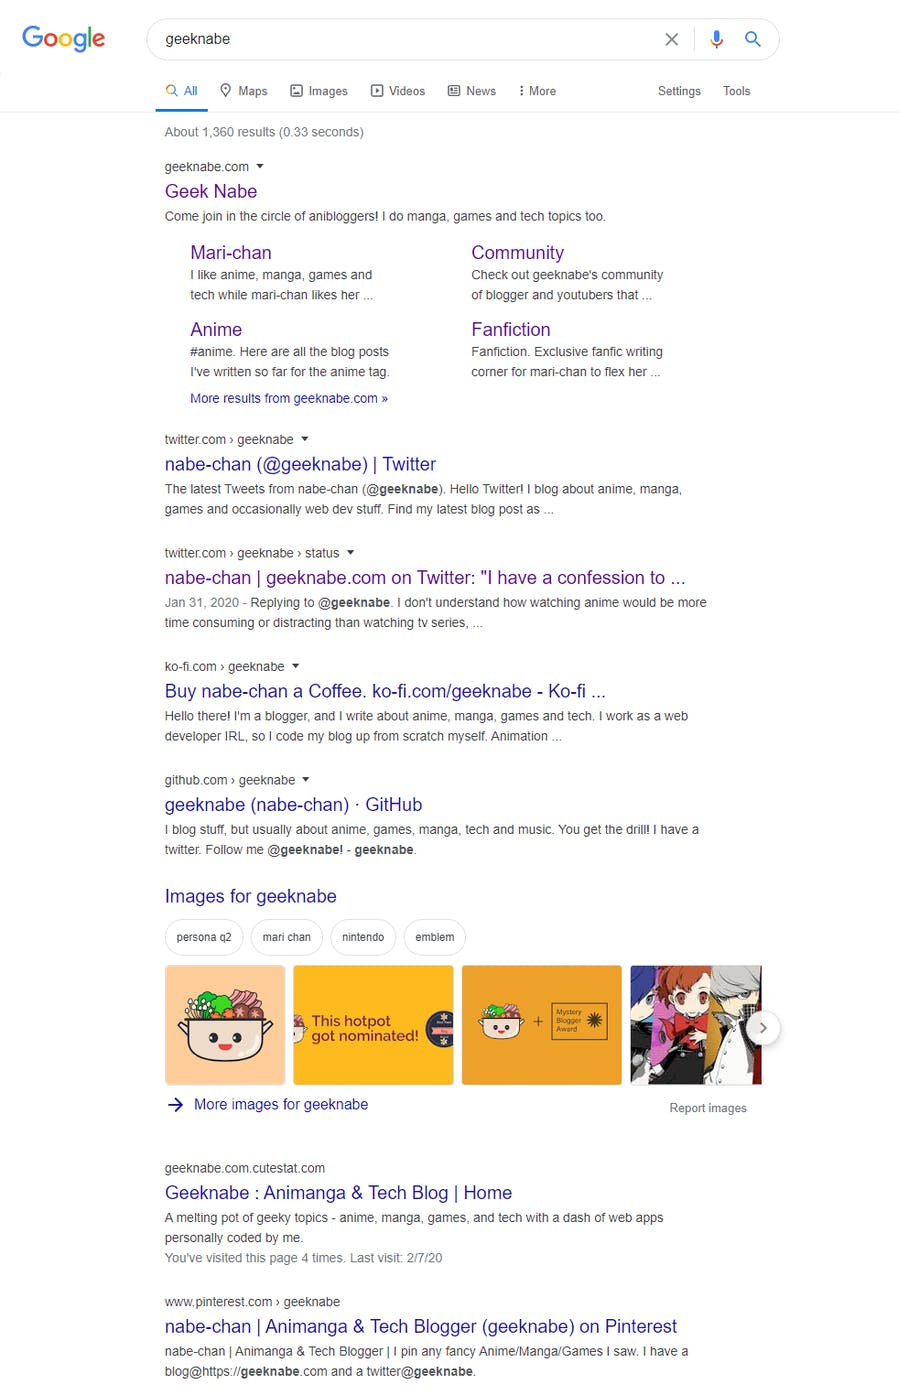 geeknabe's search result on Google